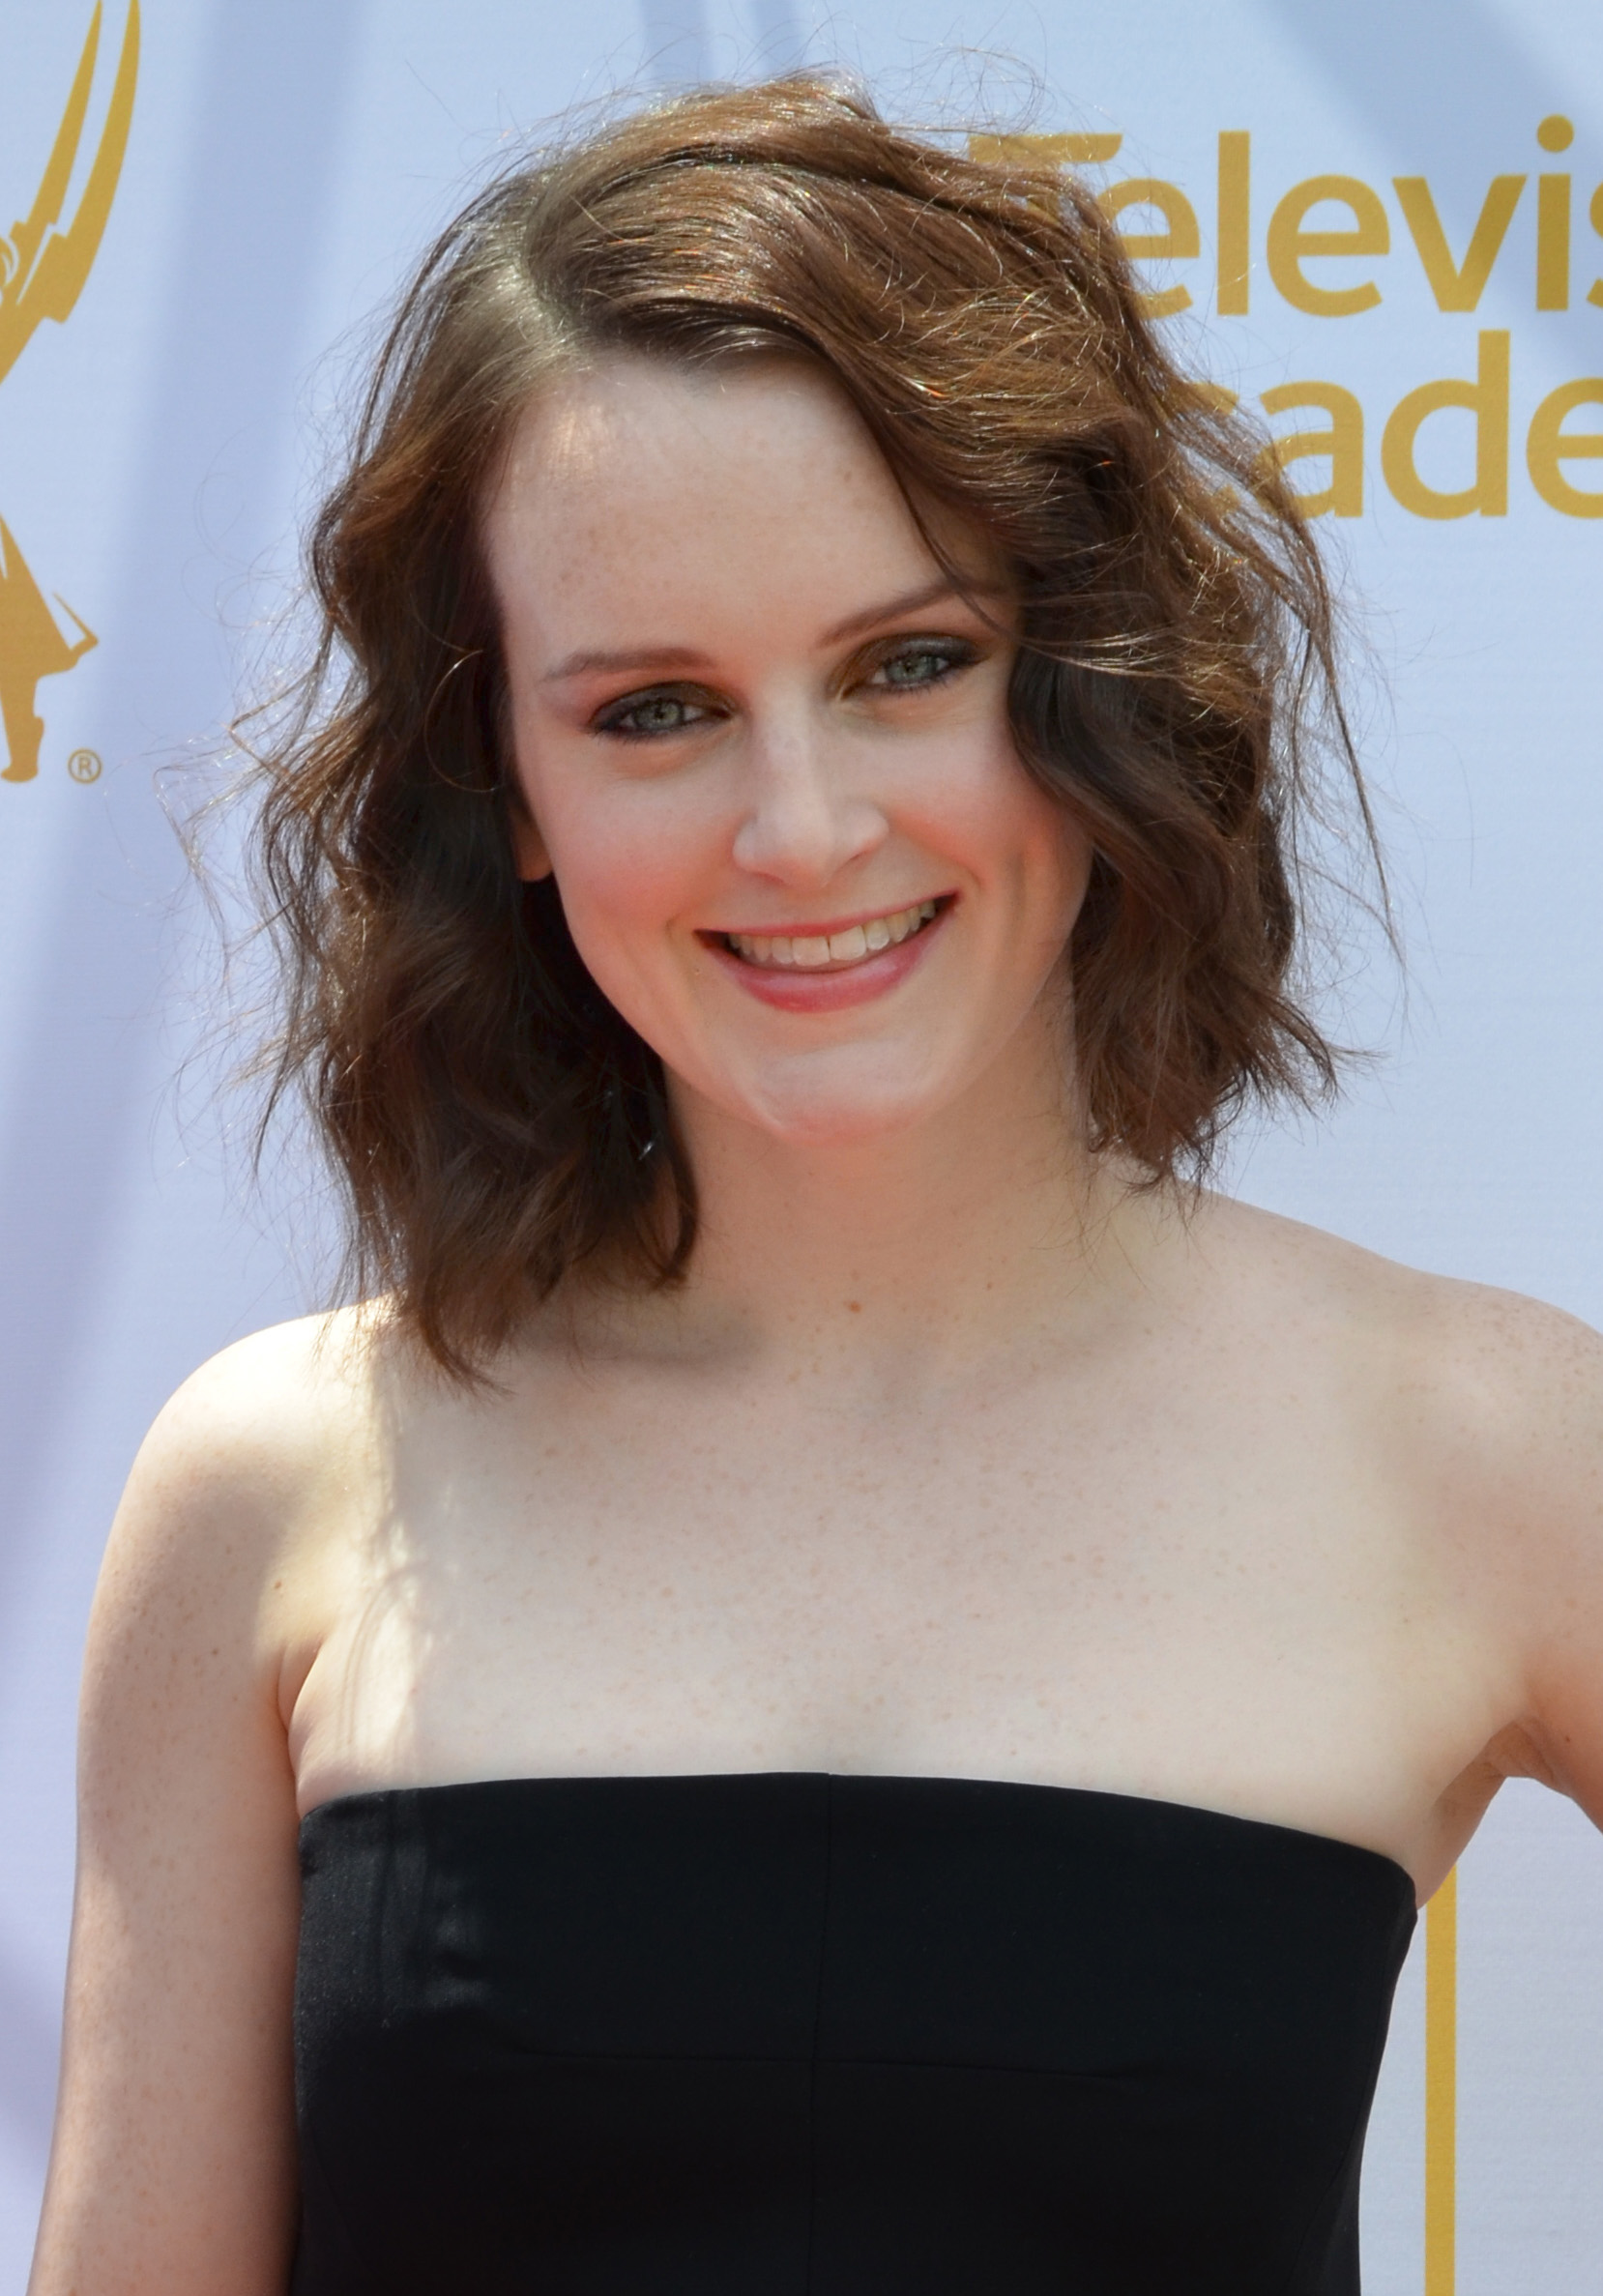 Sophie McShera earned a  million dollar salary, leaving the net worth at 1 million in 2017